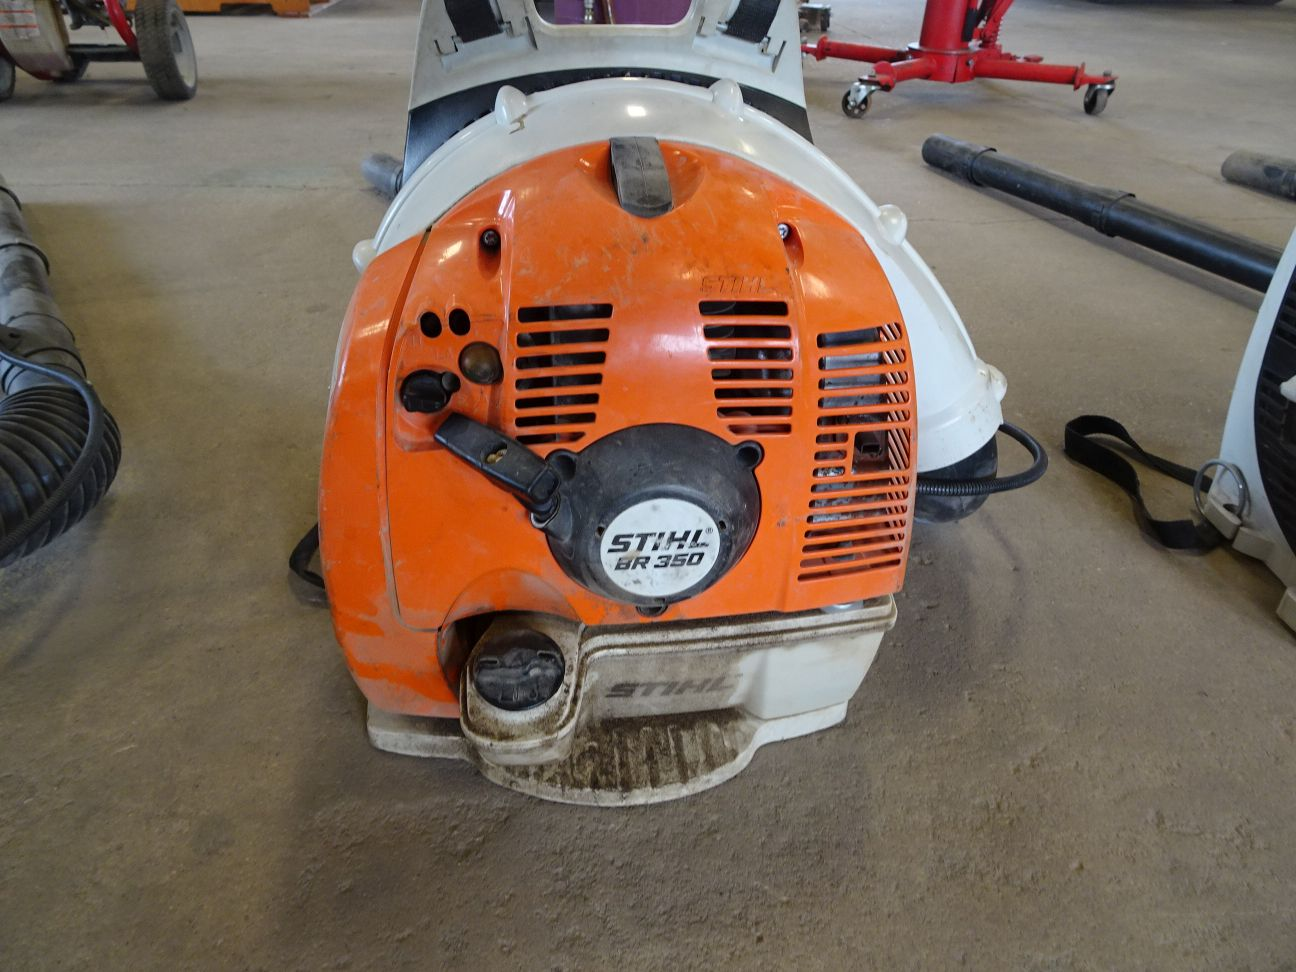 Lot 9 - STIHL BR350 GAS POWERED BACKPACK BLOWER (LOCATION: SHOP)